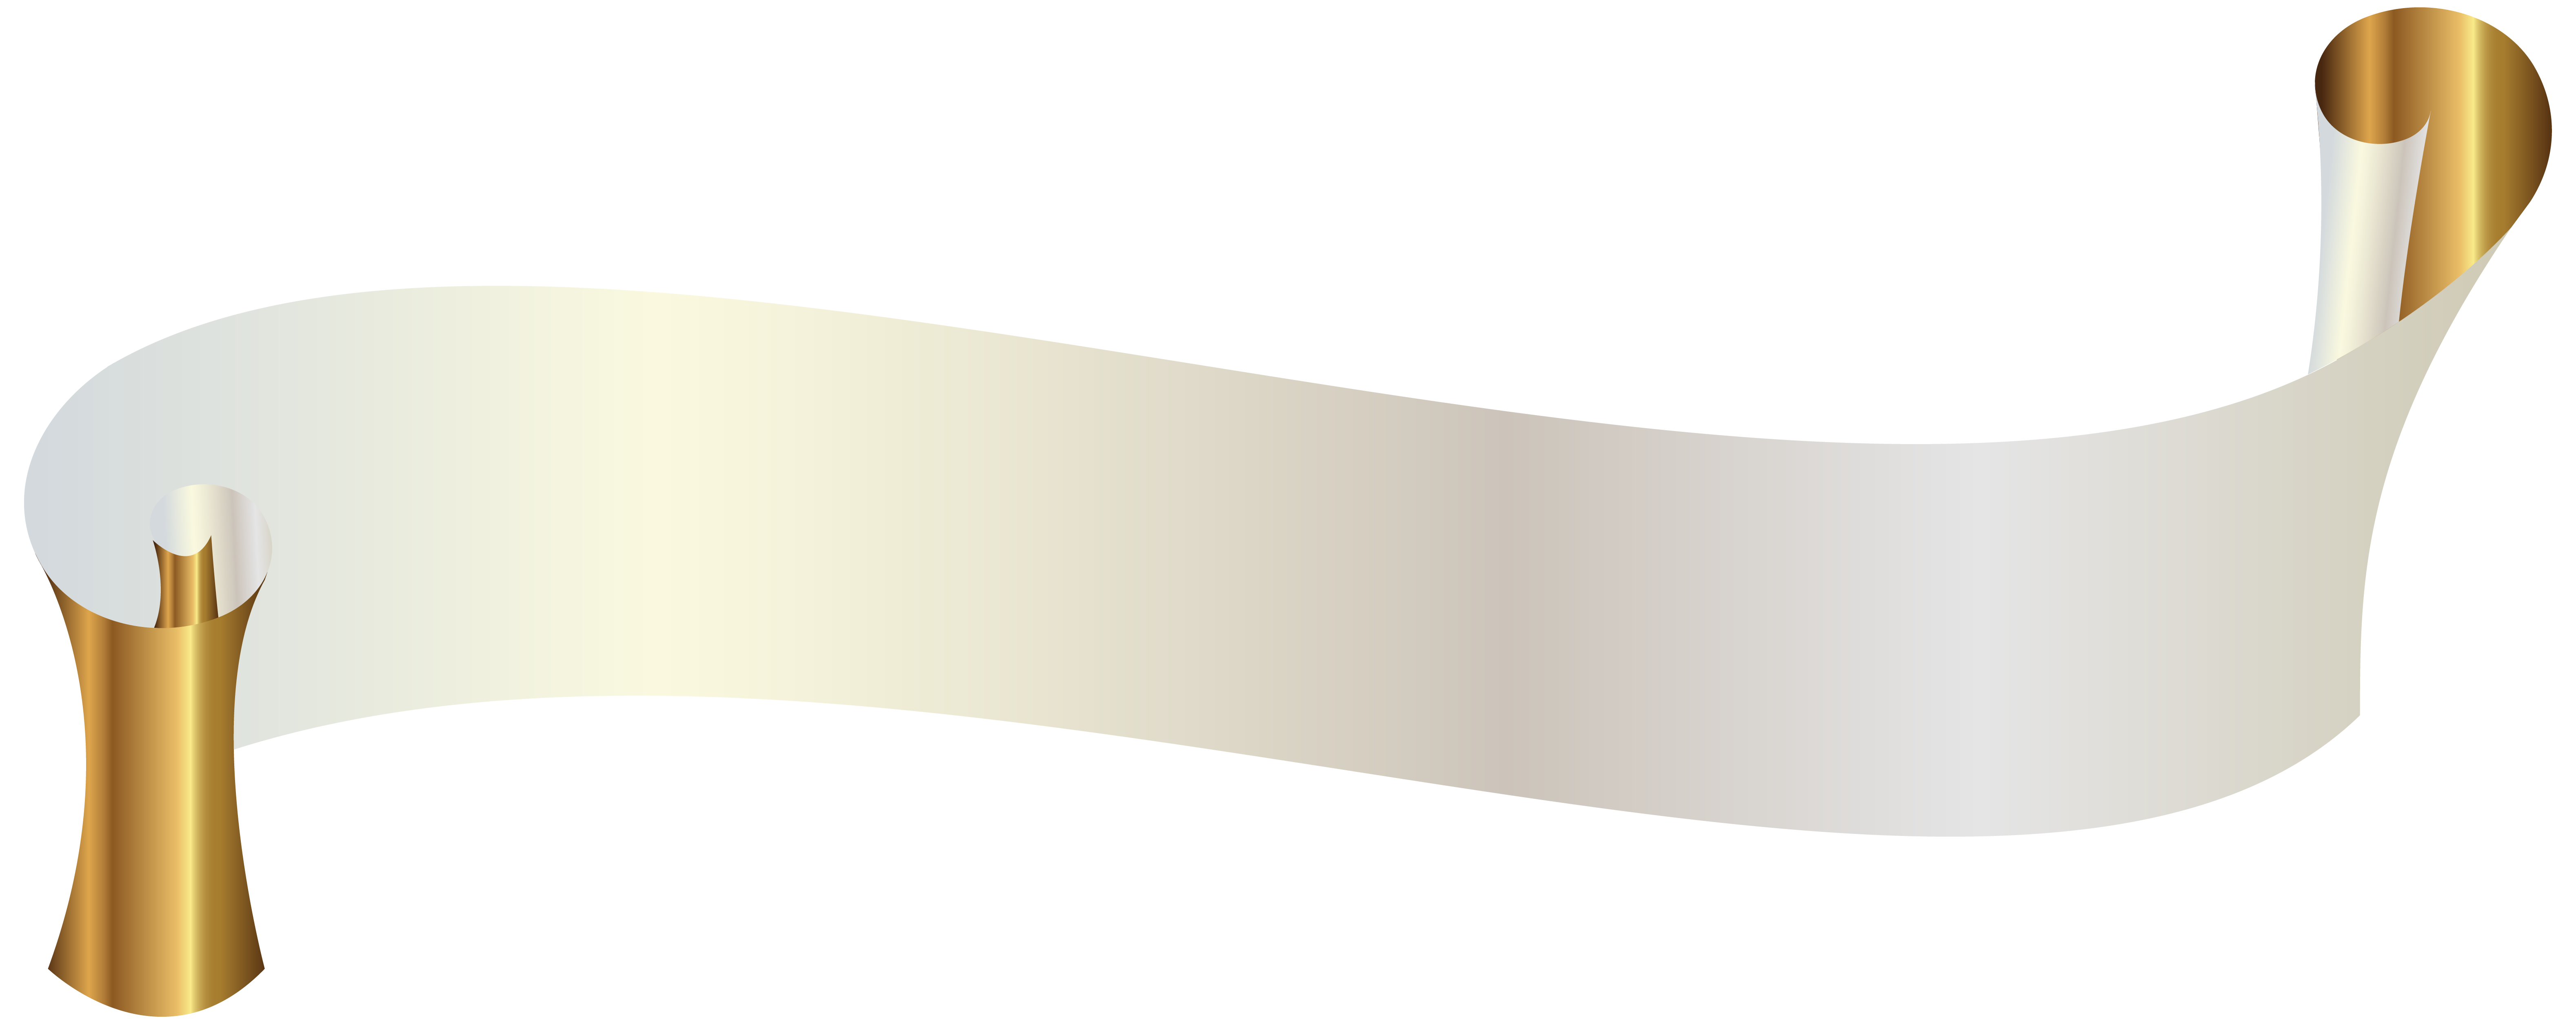 White ribbon banner png. With gold clipart image